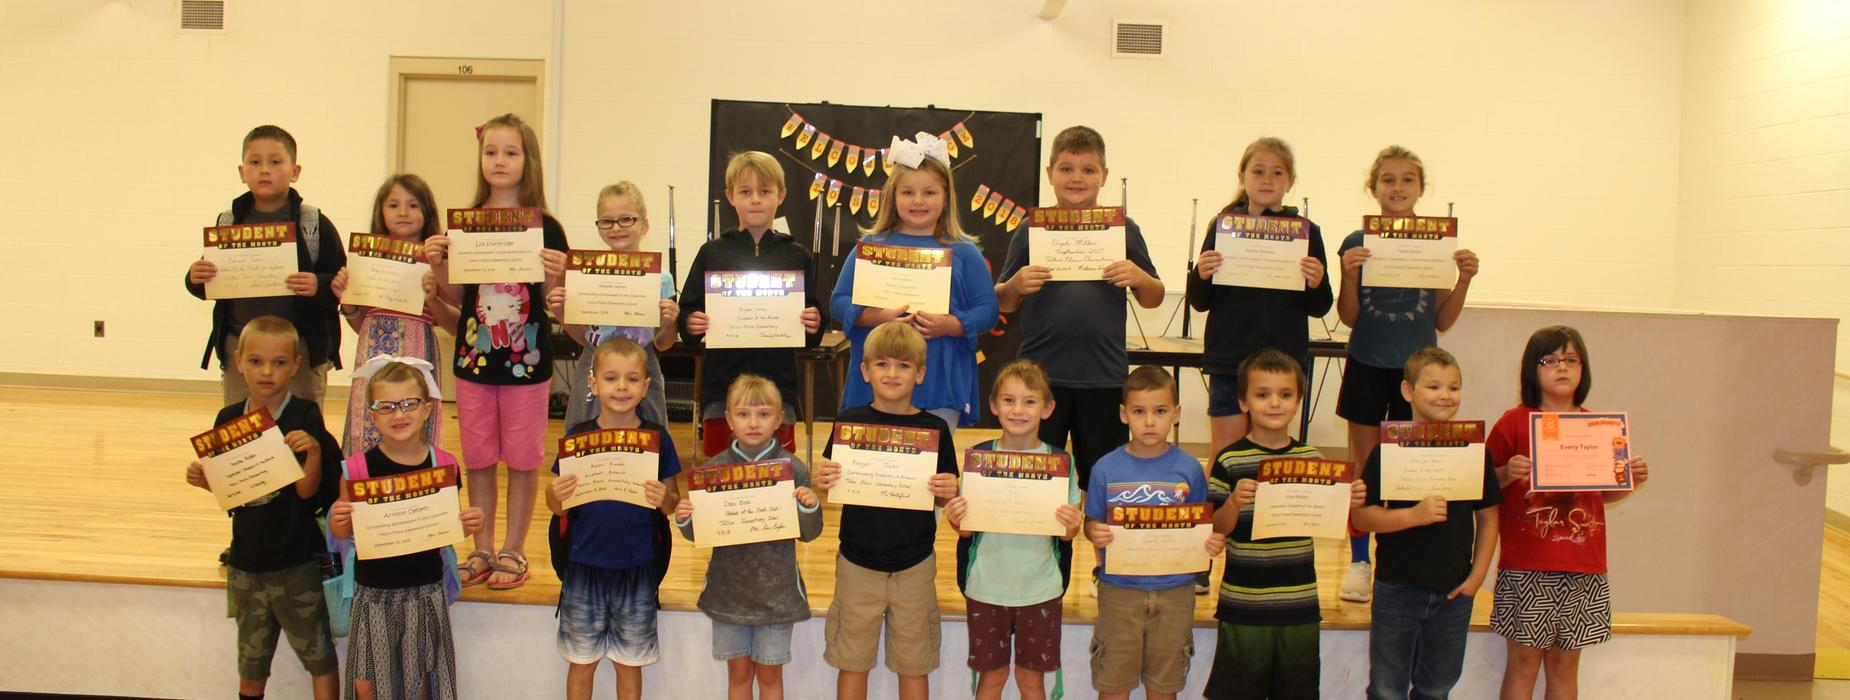 September 2018 Student of the Month Pictures